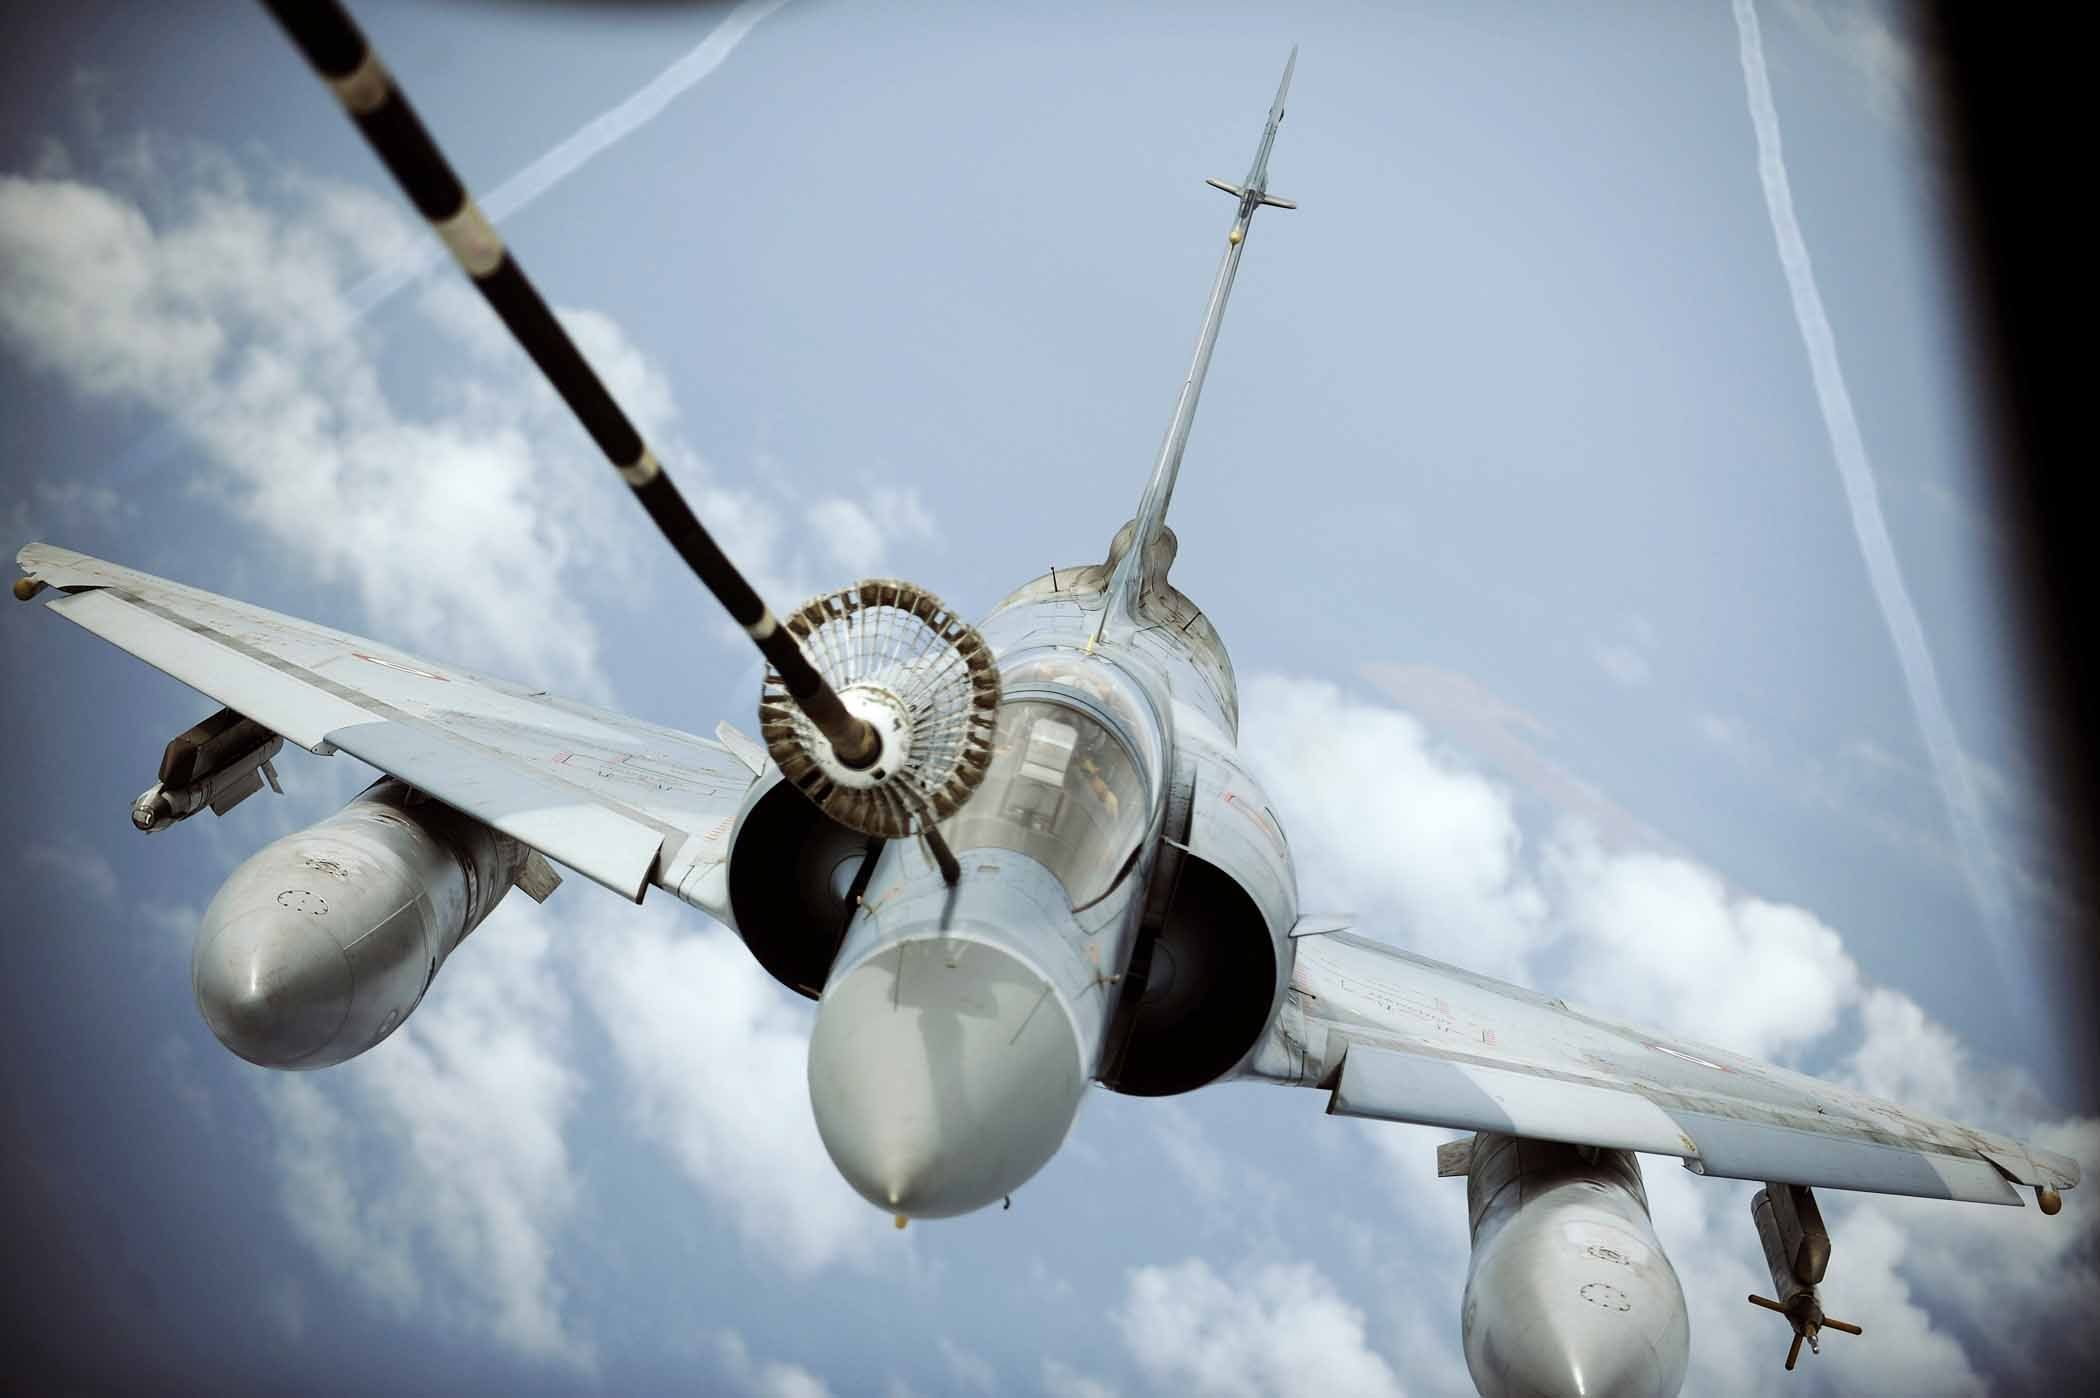 mirage 2000 latest hd wallpapers free download | mirage 2000